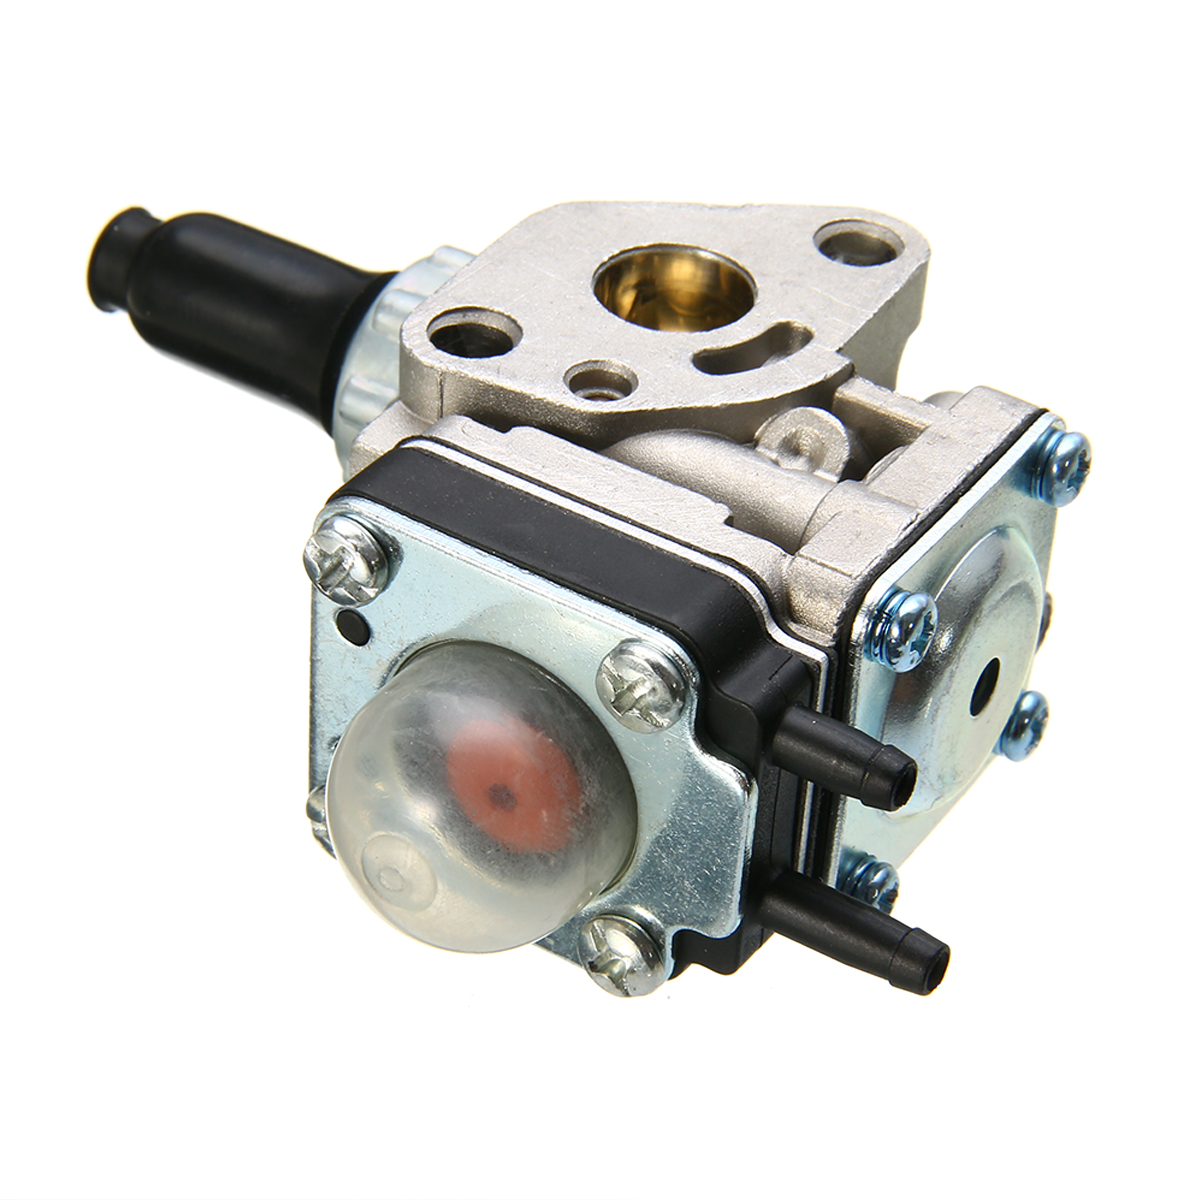 Replacement Engine Parts: Aliexpress.com : Buy 1pc Carburetor Carb For TH43 TH48